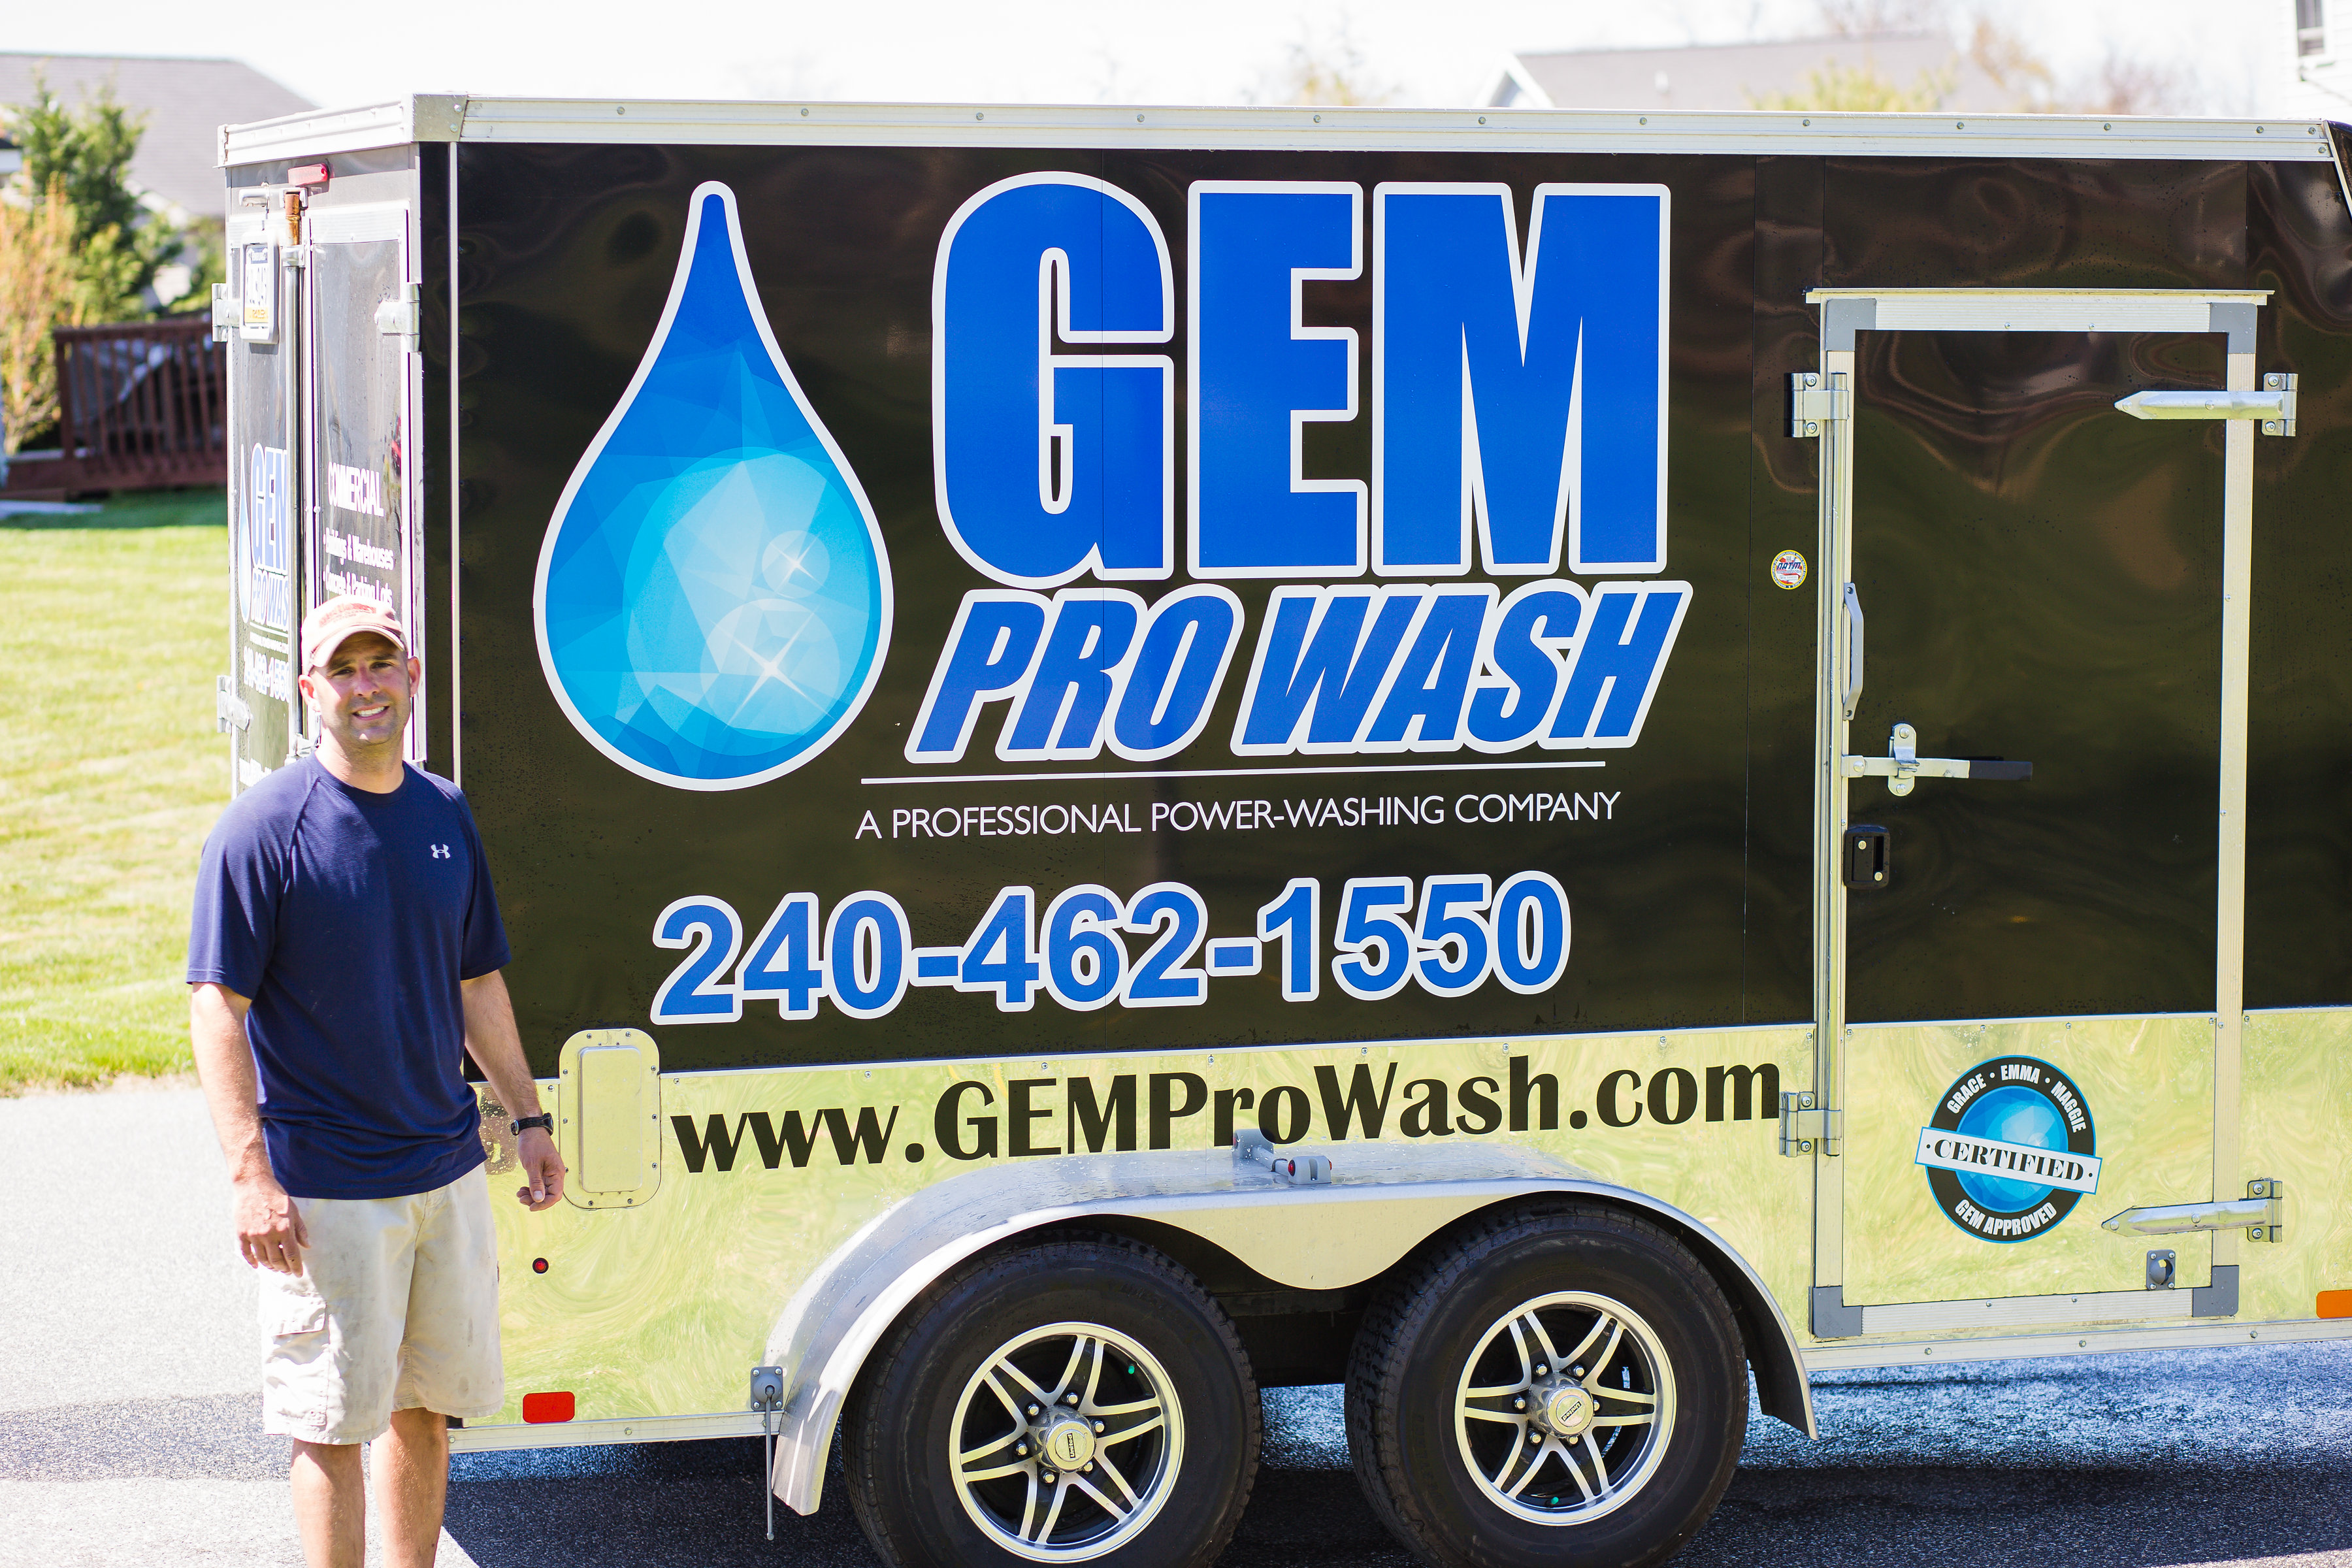 Gem Pro Wash | Pressure Washing Company in Martinsburg WV